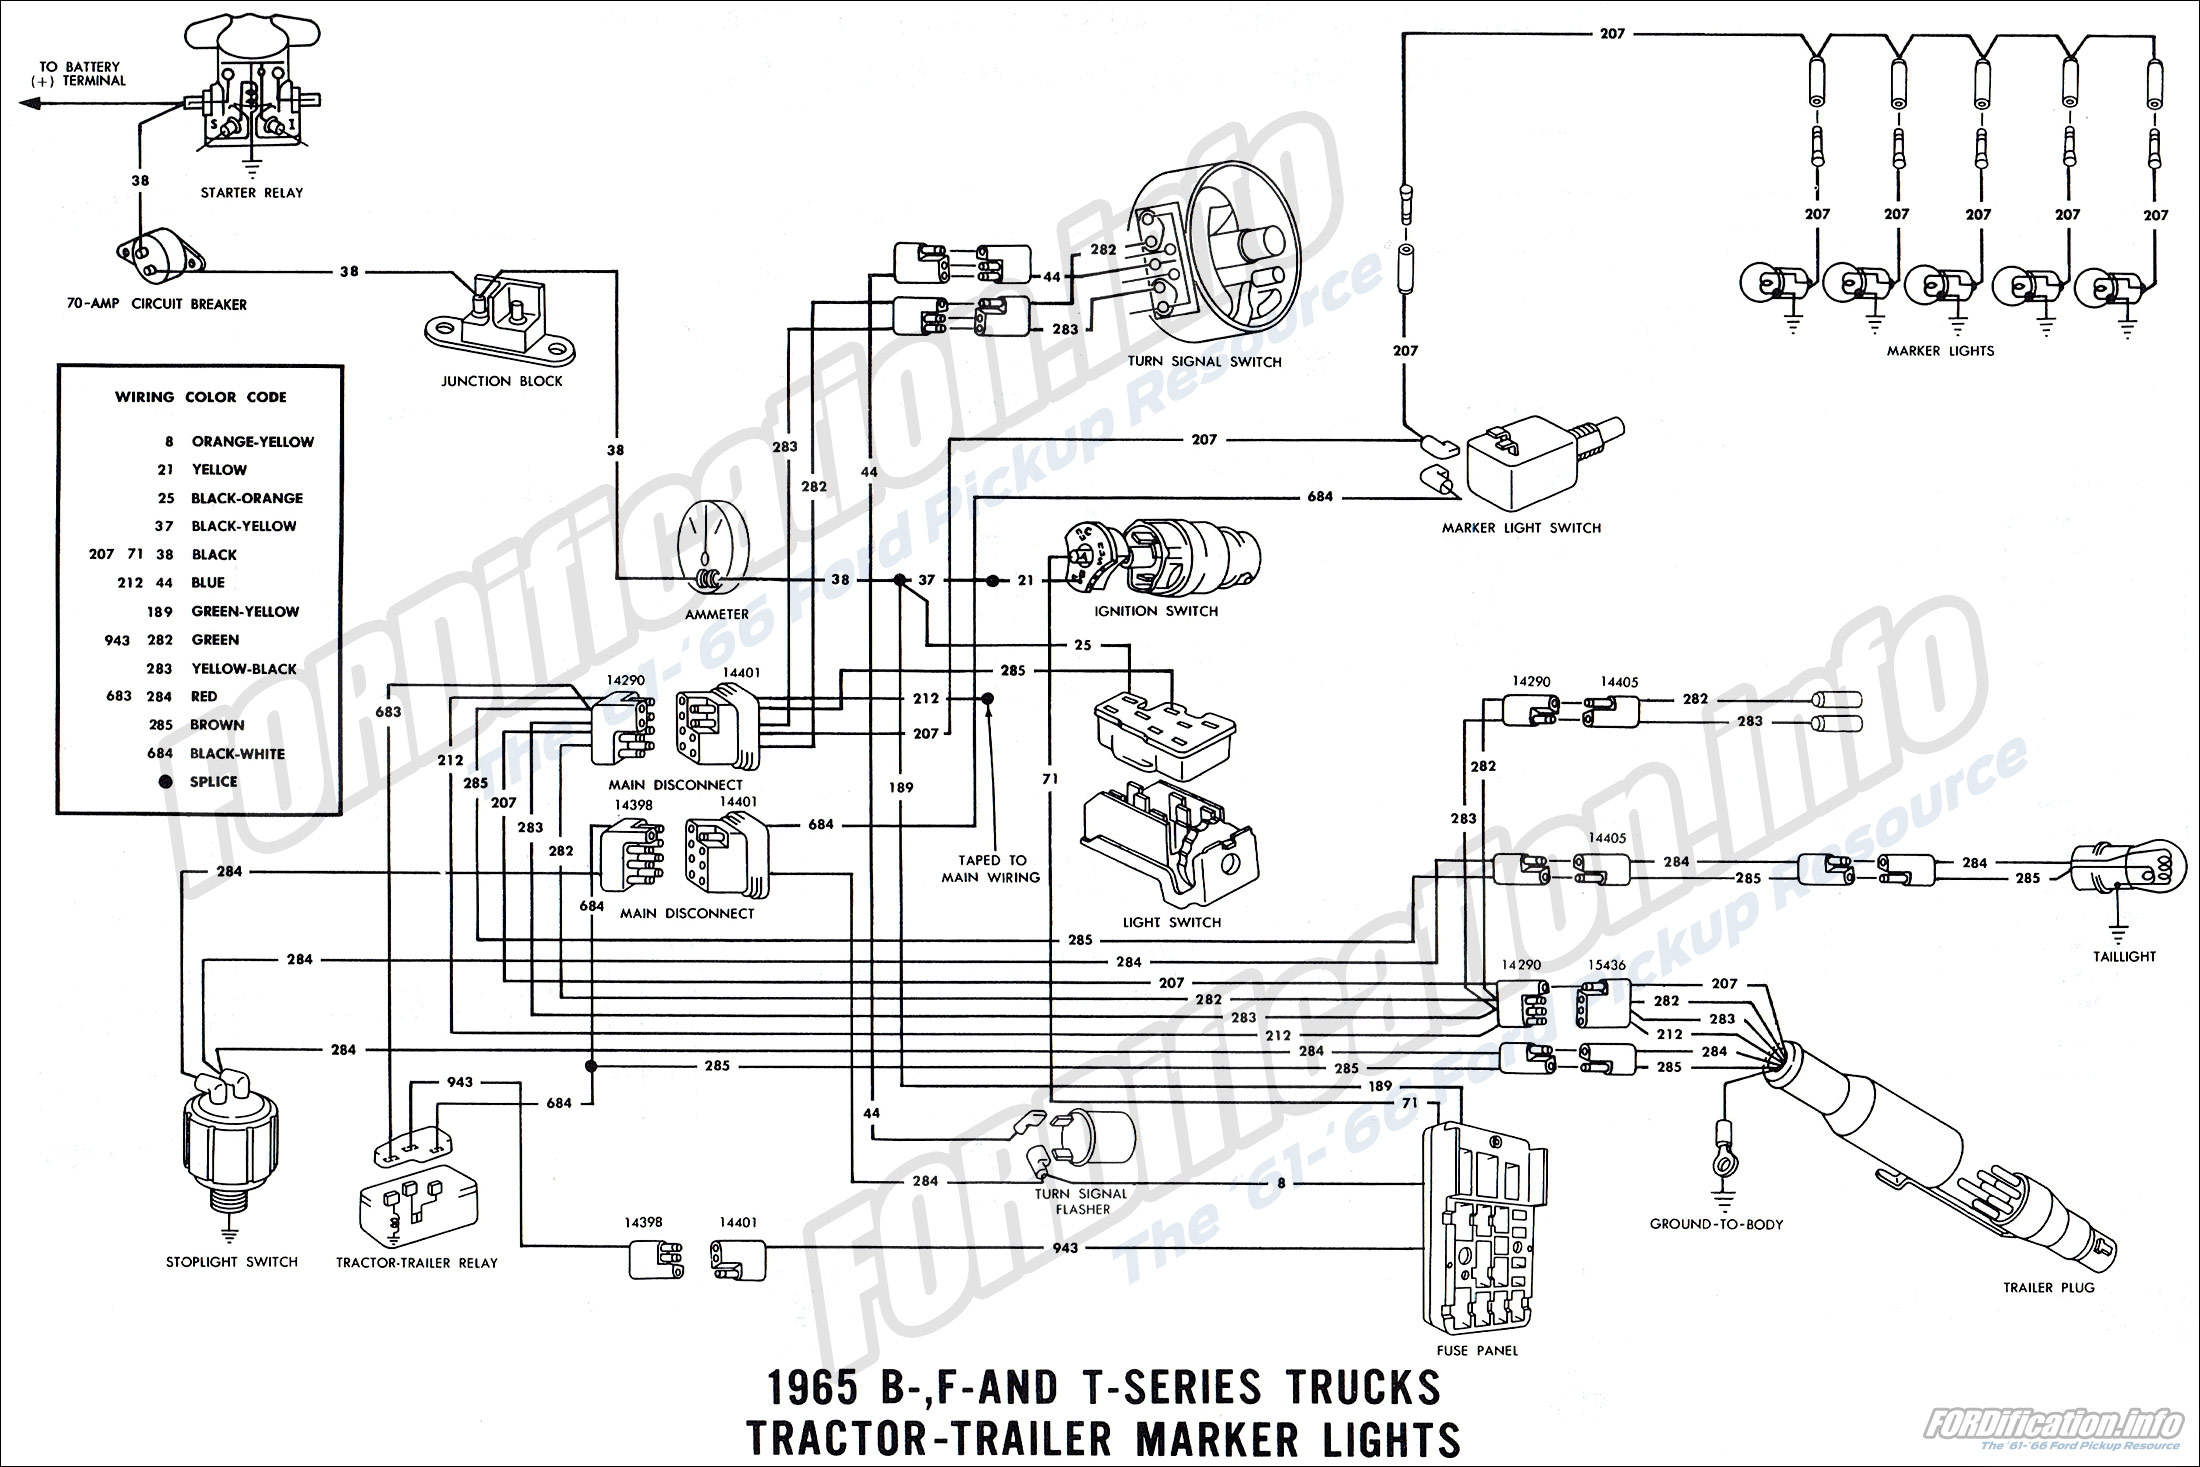 ford 4000 wiring diagram pictures of sides catenary arch tractor voltage regulator html autos weblog